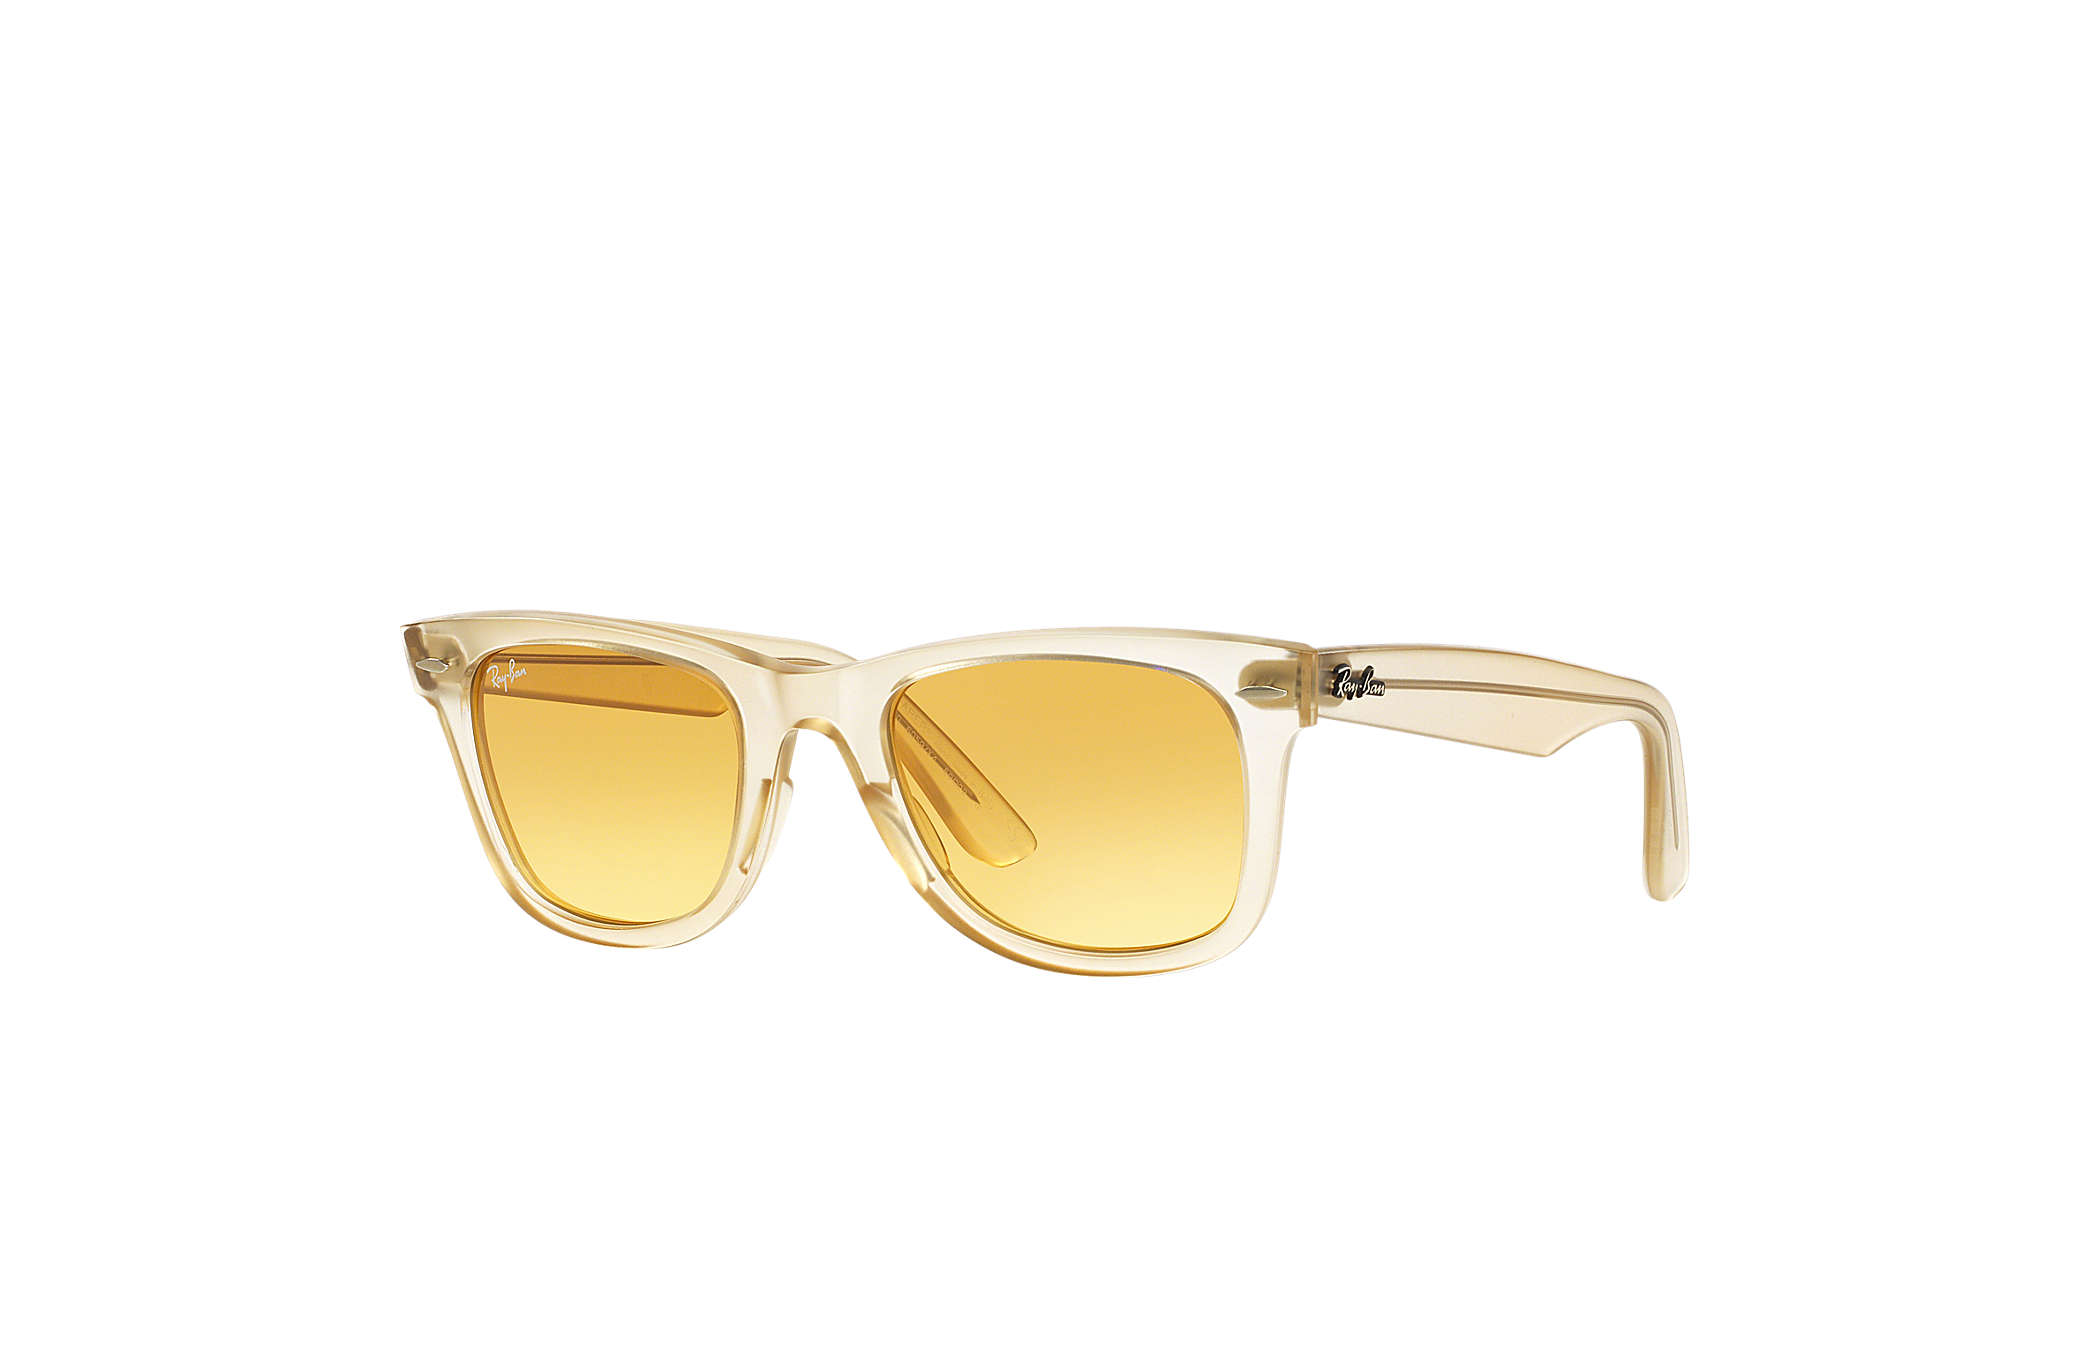 ray ban sunglasses yellow  ray ban 0rb2140 original wayfarer ice pops yellow,light brown sun